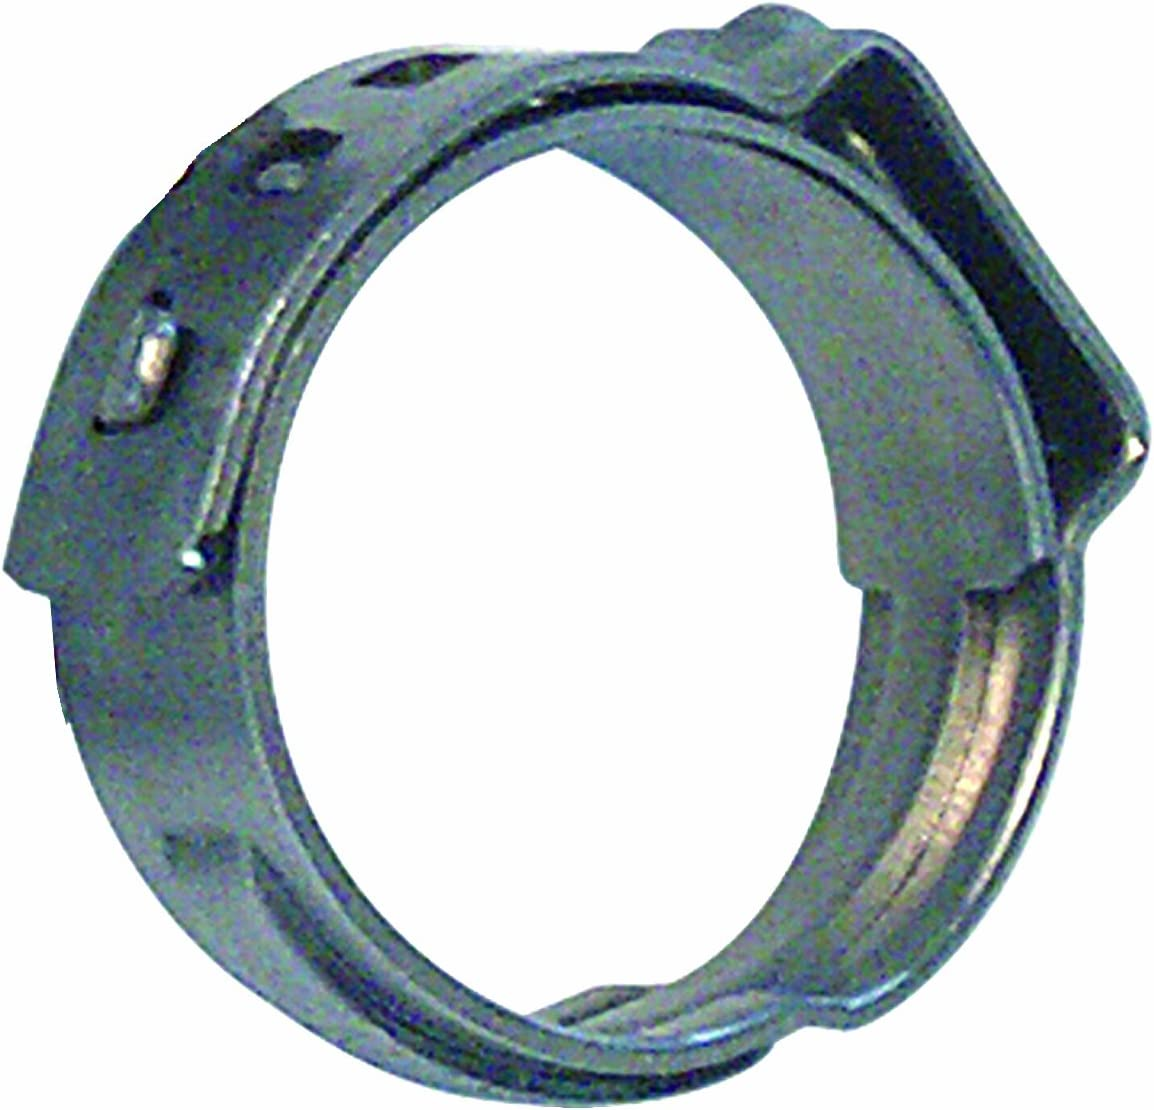 Stainless Steel Pinch Clamps Cinch Rings for PEX Tubing Pipe Fitting Connections 5//8 Inch LOKMAN 50 Pack 5//8 Inch PEX Cinch Clamps